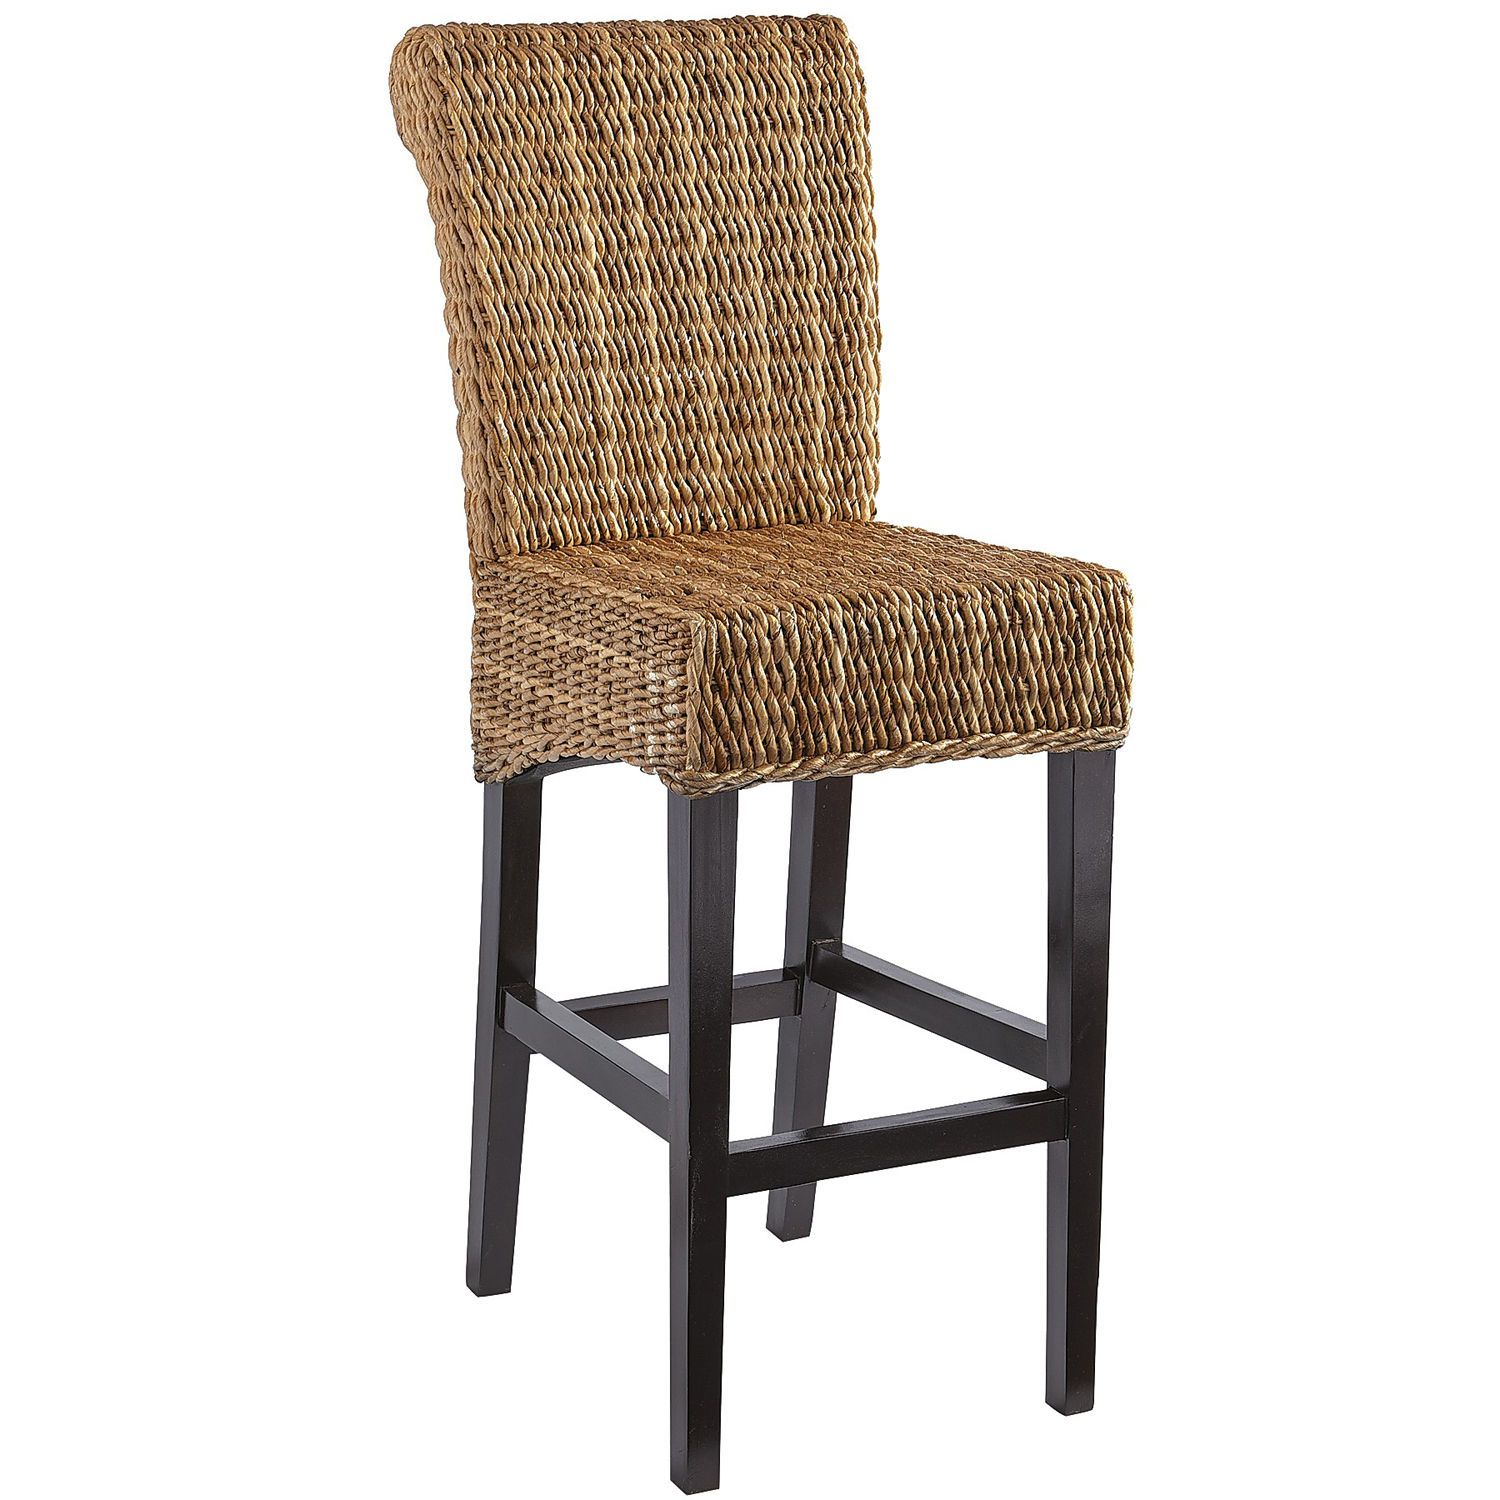 Surprising Sonita Banana Bar Counter Stools Pier 1 Imports For Cjindustries Chair Design For Home Cjindustriesco